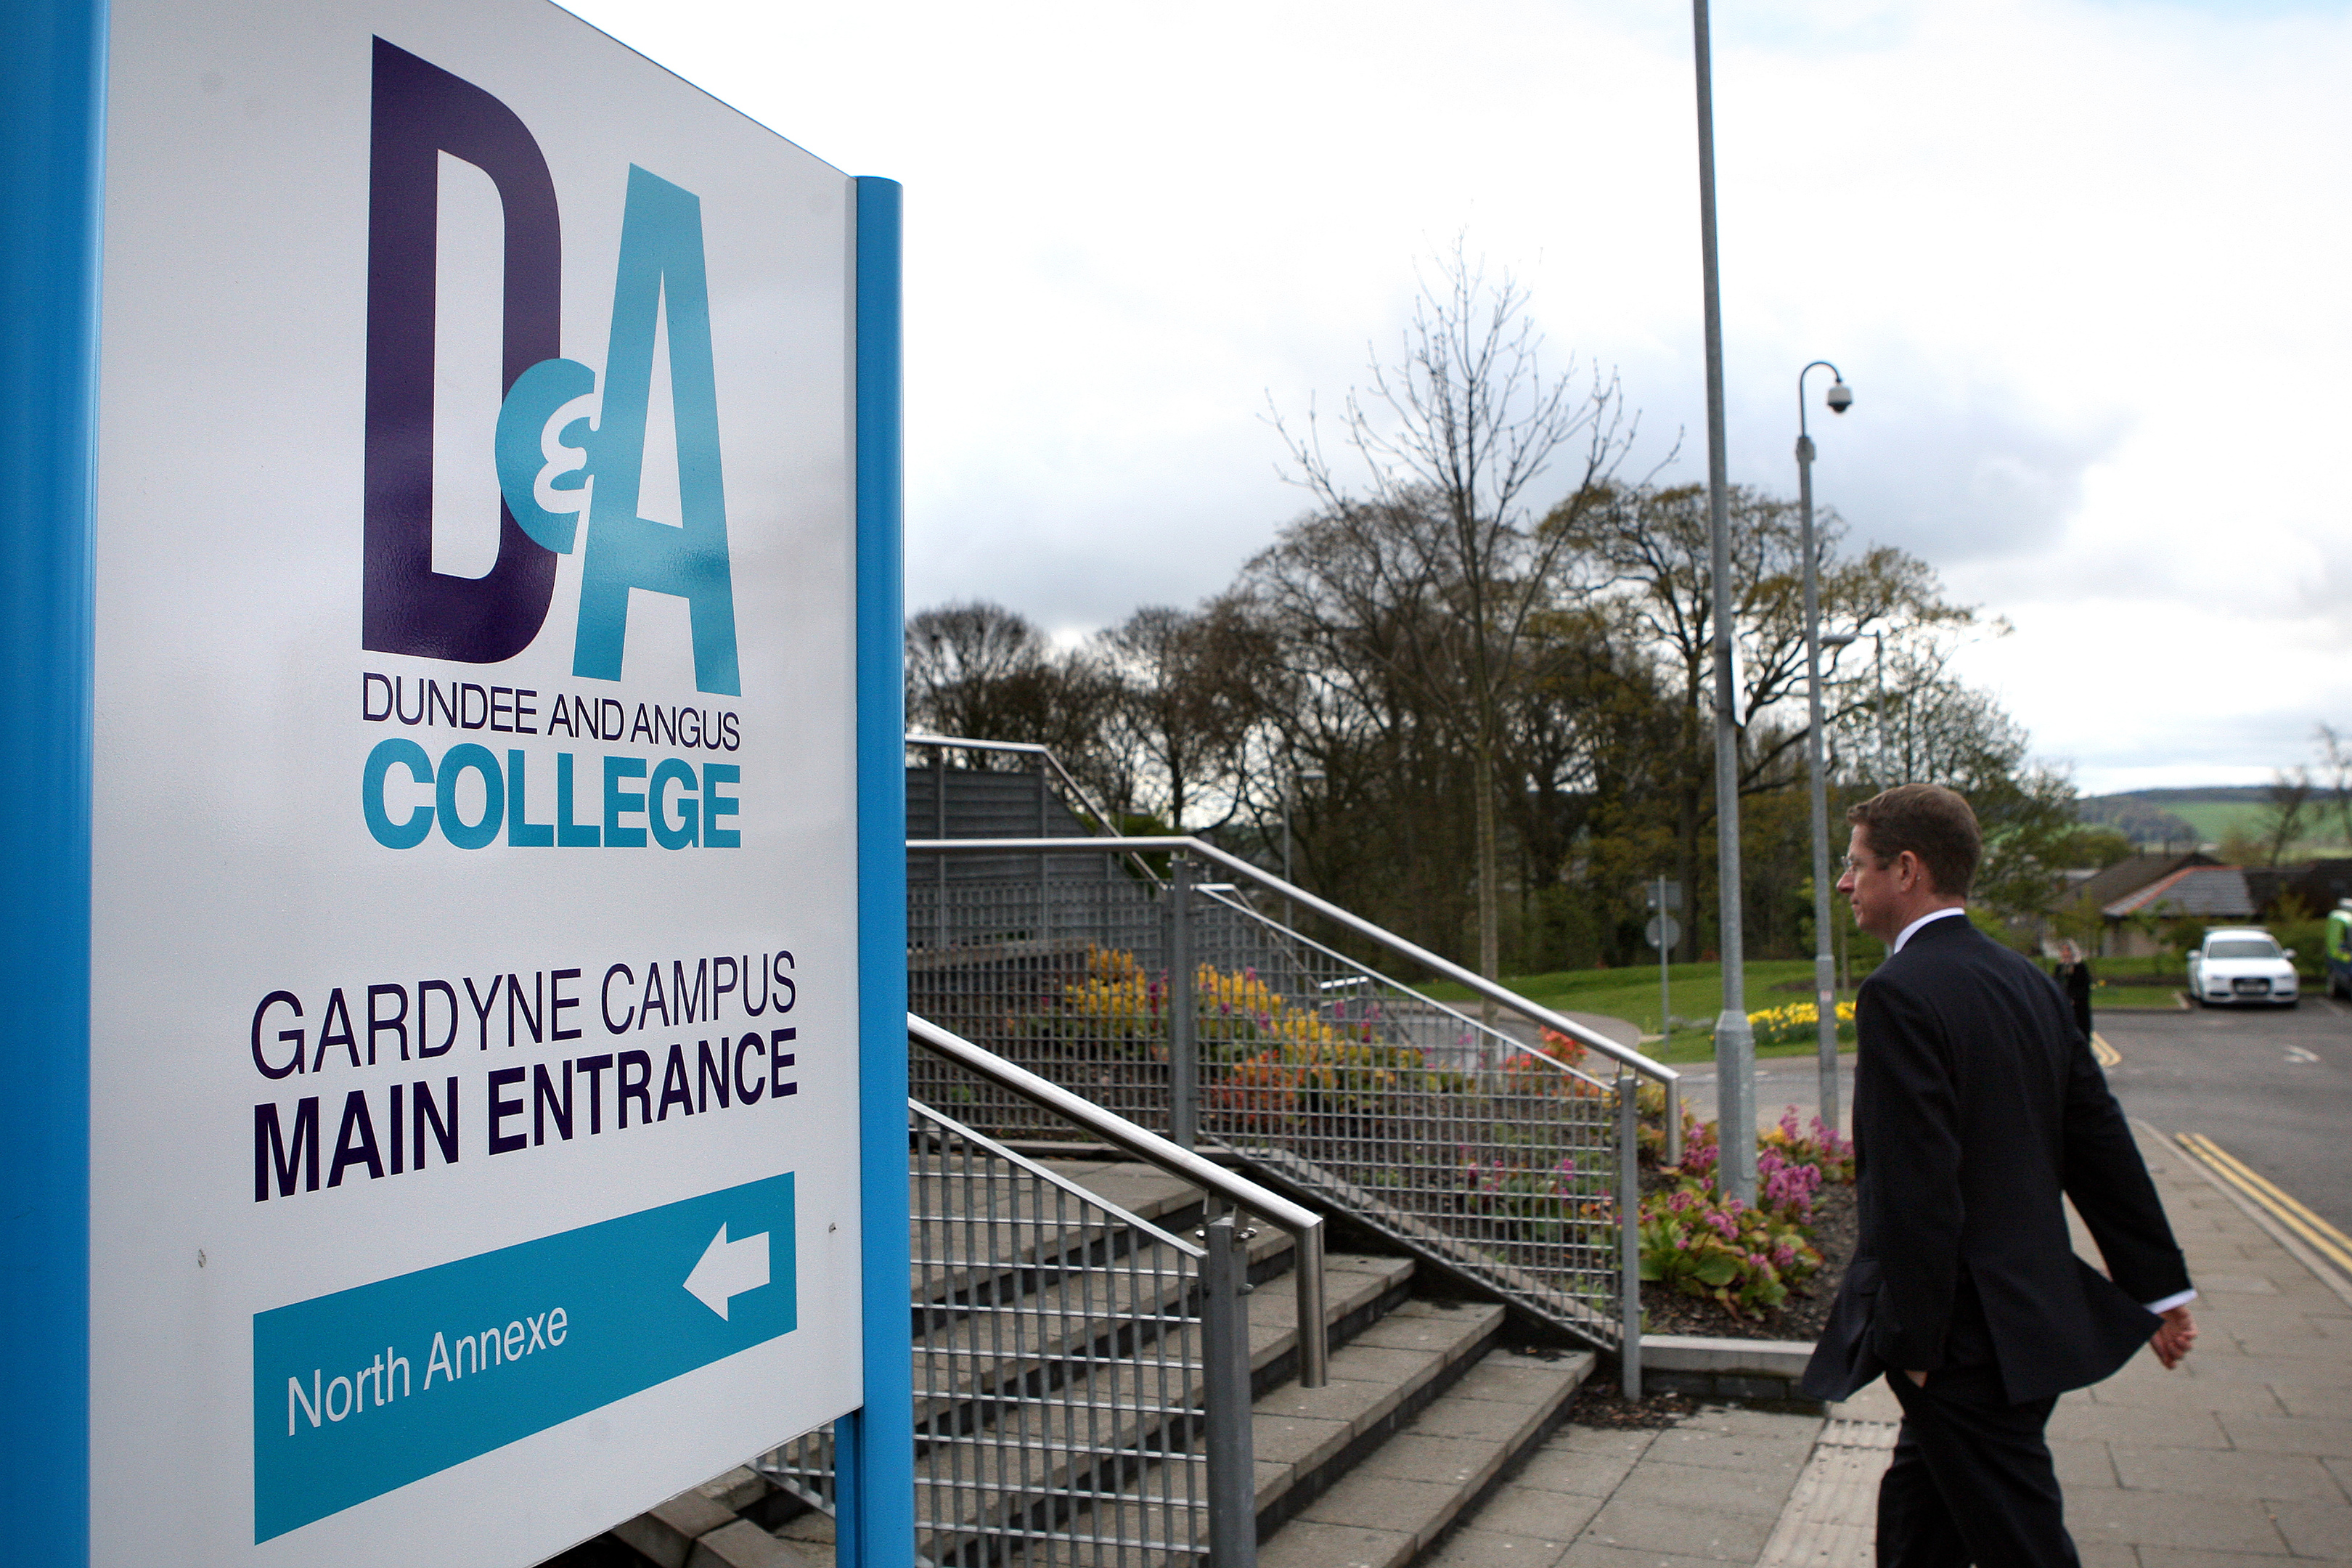 Dundee and Angus College's Gardyne Campus.